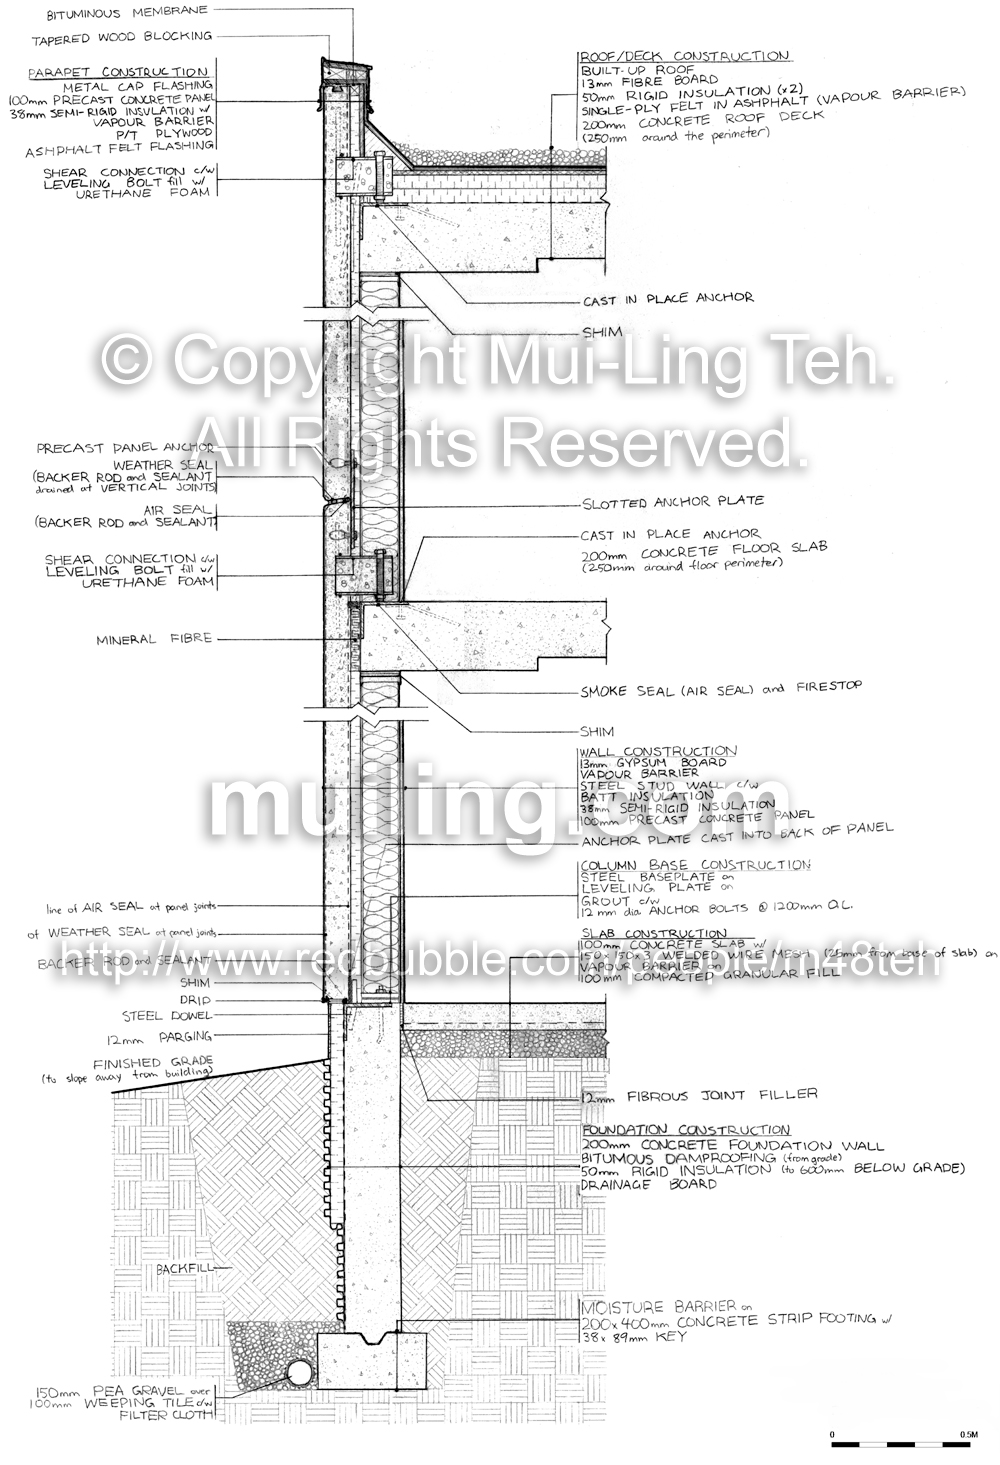 Mui Ling Teh Architectural Drawings And Material Studies